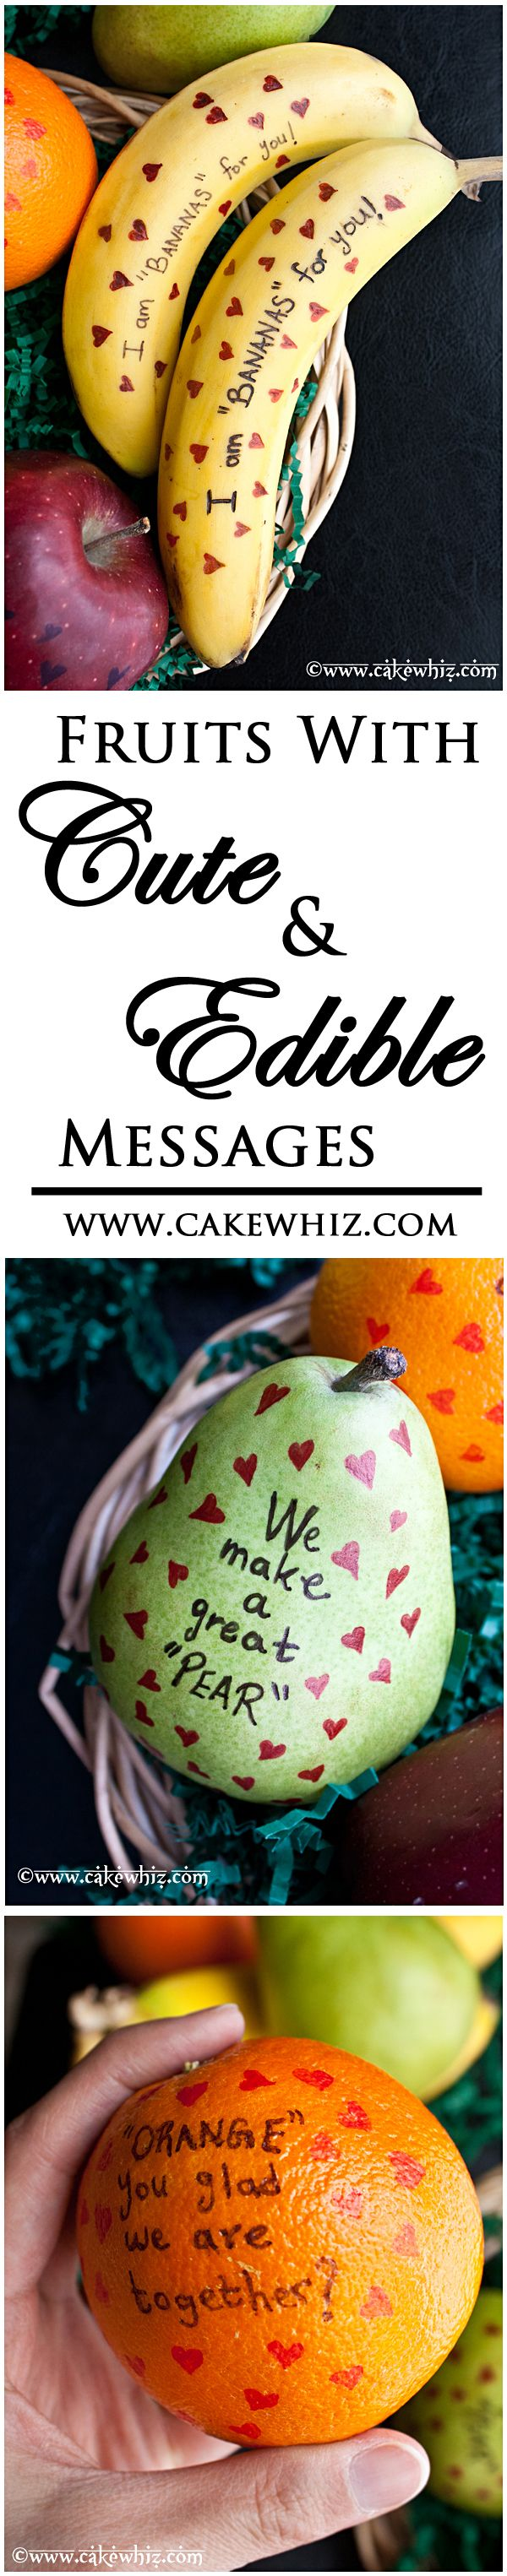 FRUITS with sweet messages... fun to make with kids or surprise them by putting these adorable fruits in their school lunch boxes or even hubby's lunch box :)